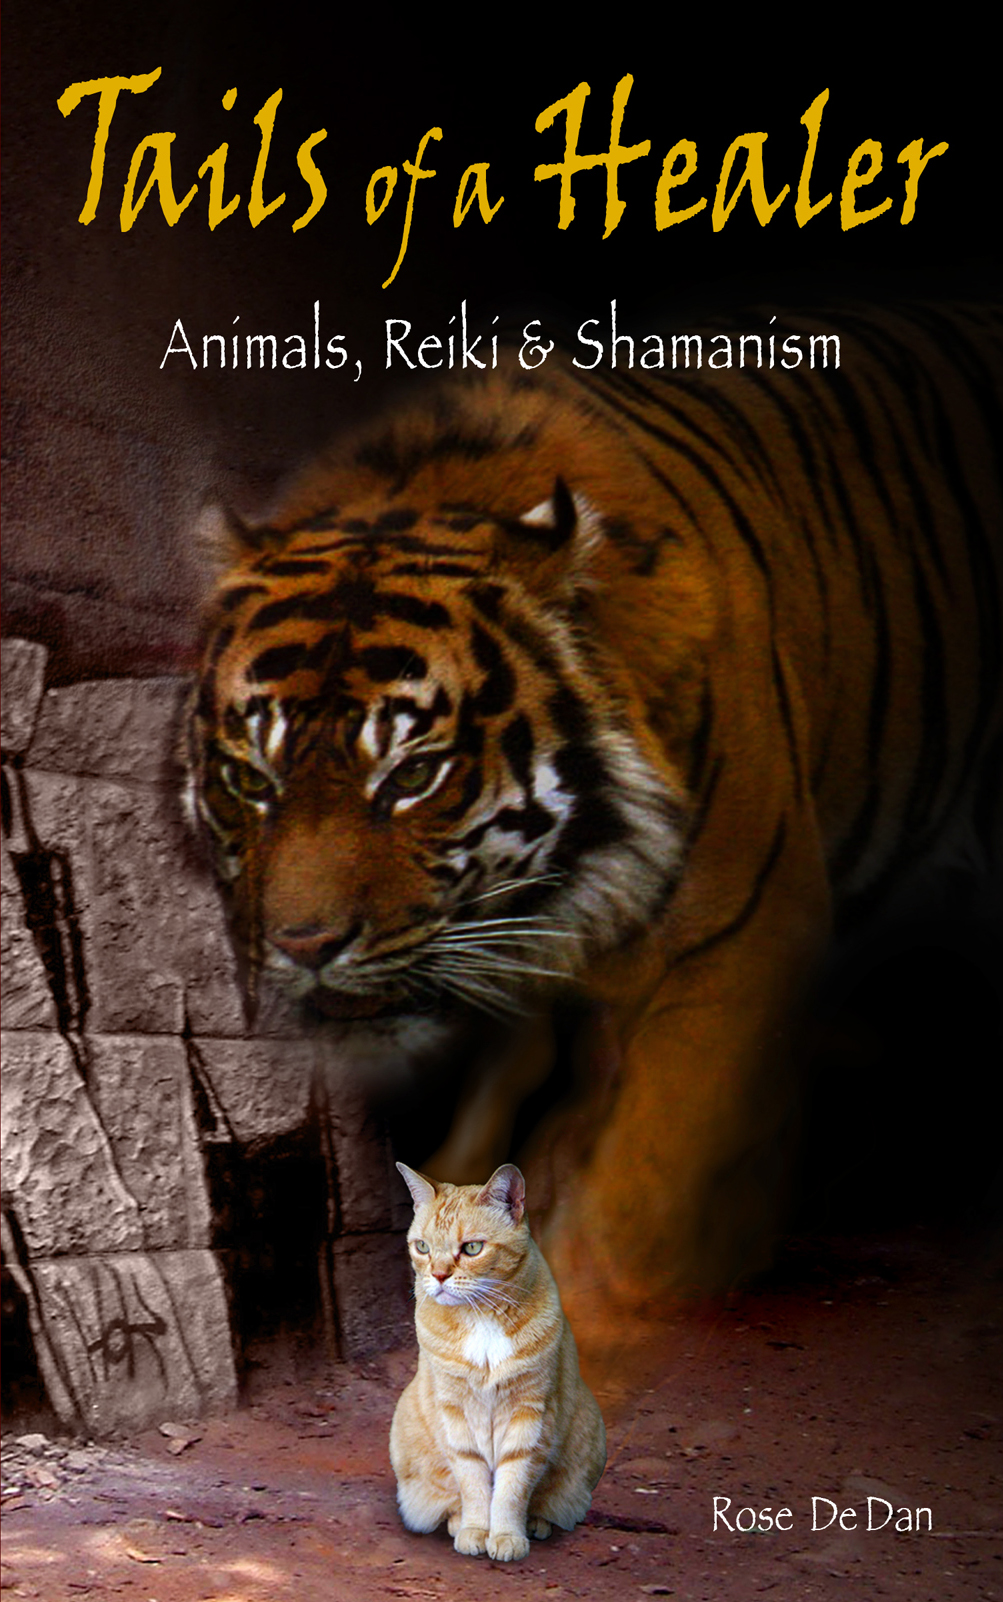 Tails of a Healer: Animals, Reiki and Shamanism978-1-4343-5501-0